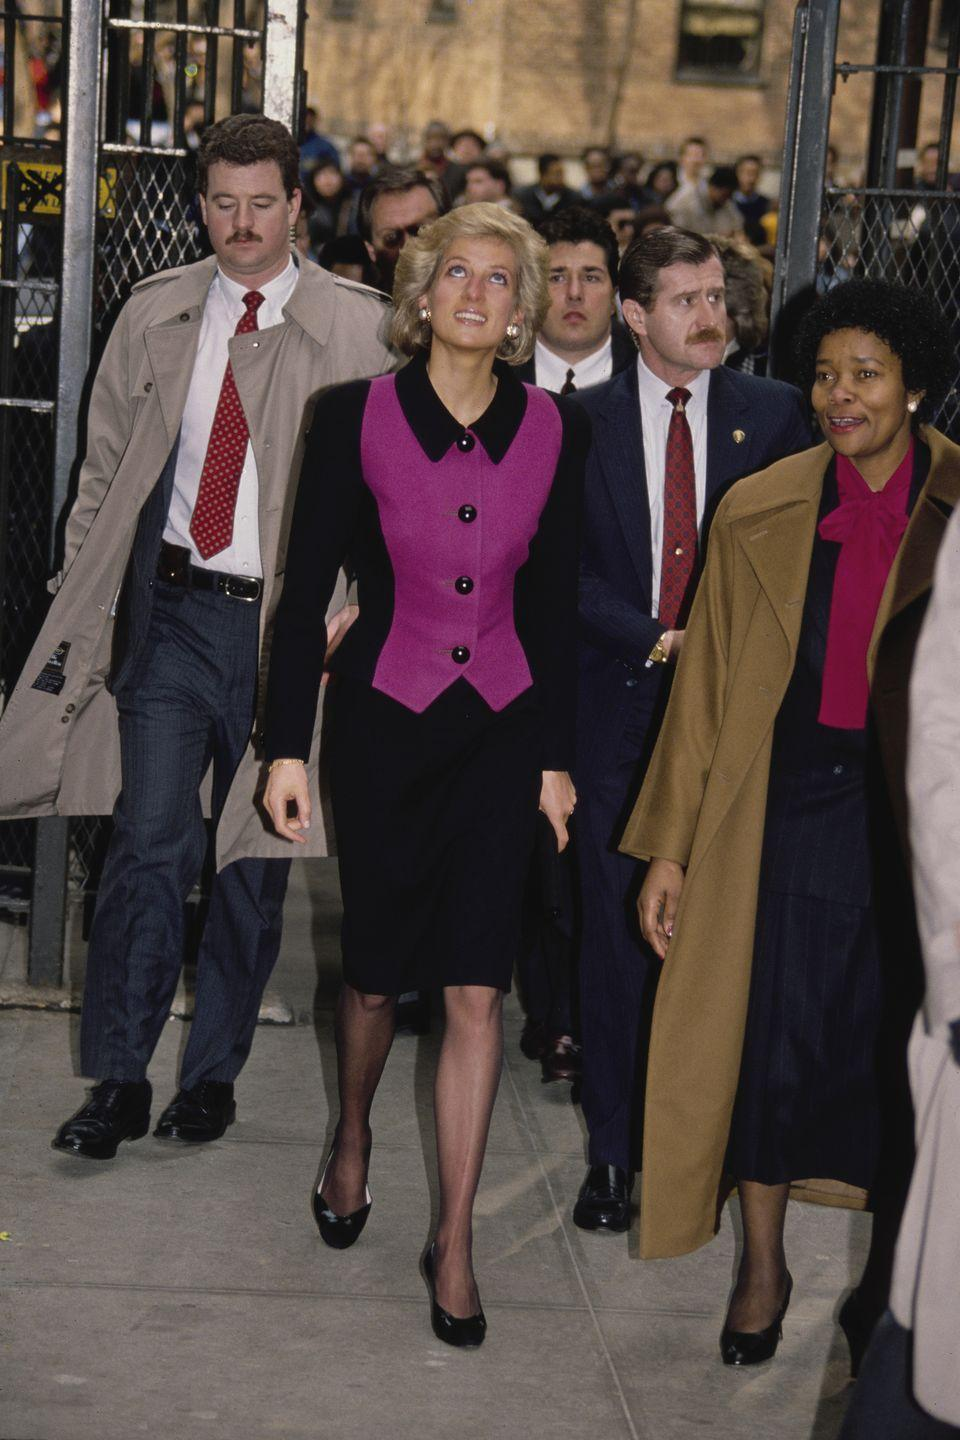 <p>Diana wears a pink and black, colorblocked suit by Catherine Walker. </p>